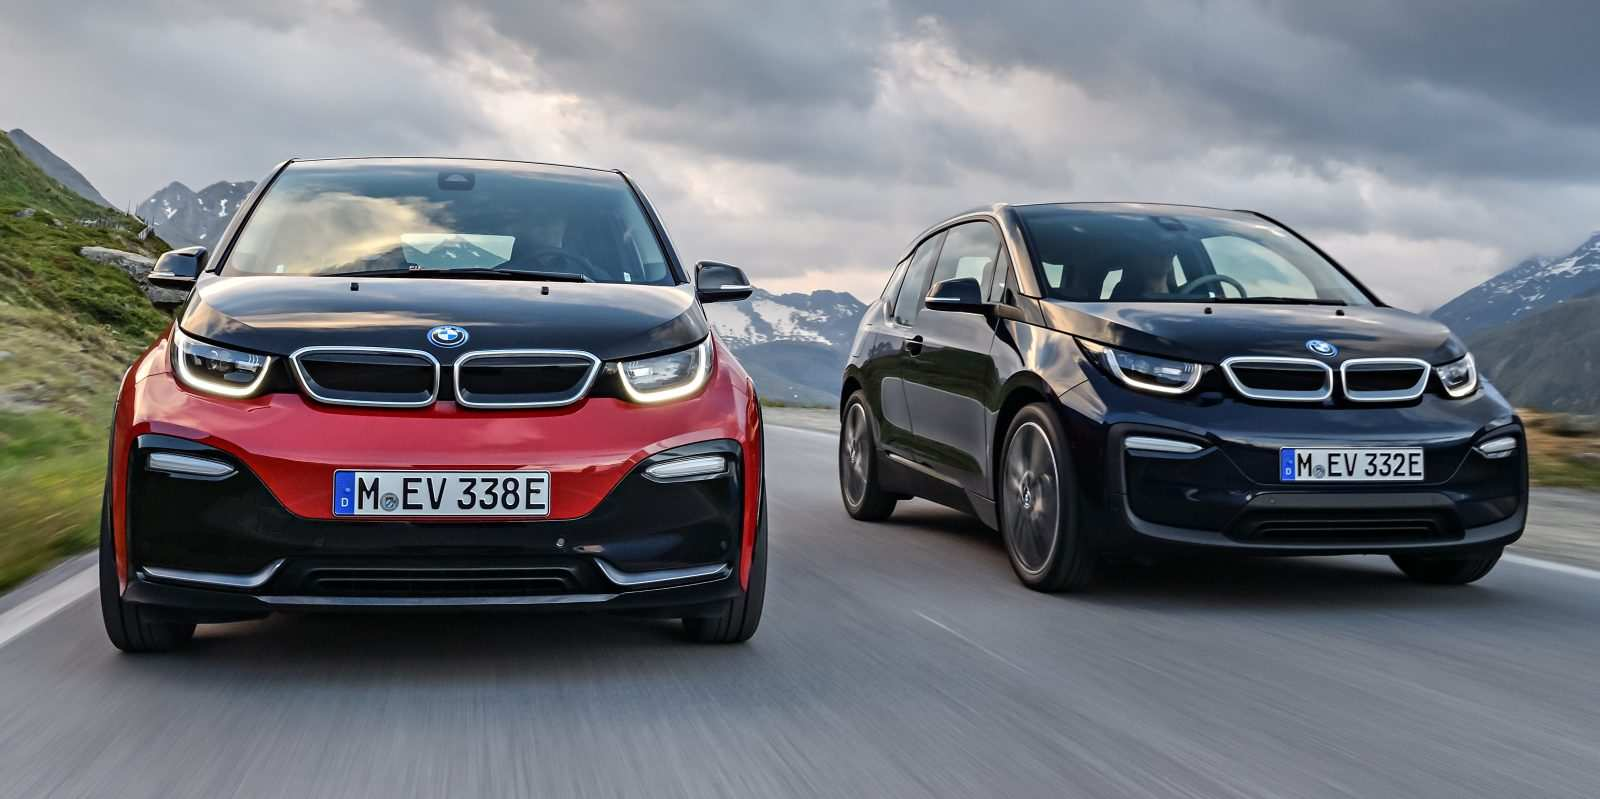 65 All New Bmw I3 New Model 2020 Exterior and Interior with Bmw I3 New Model 2020